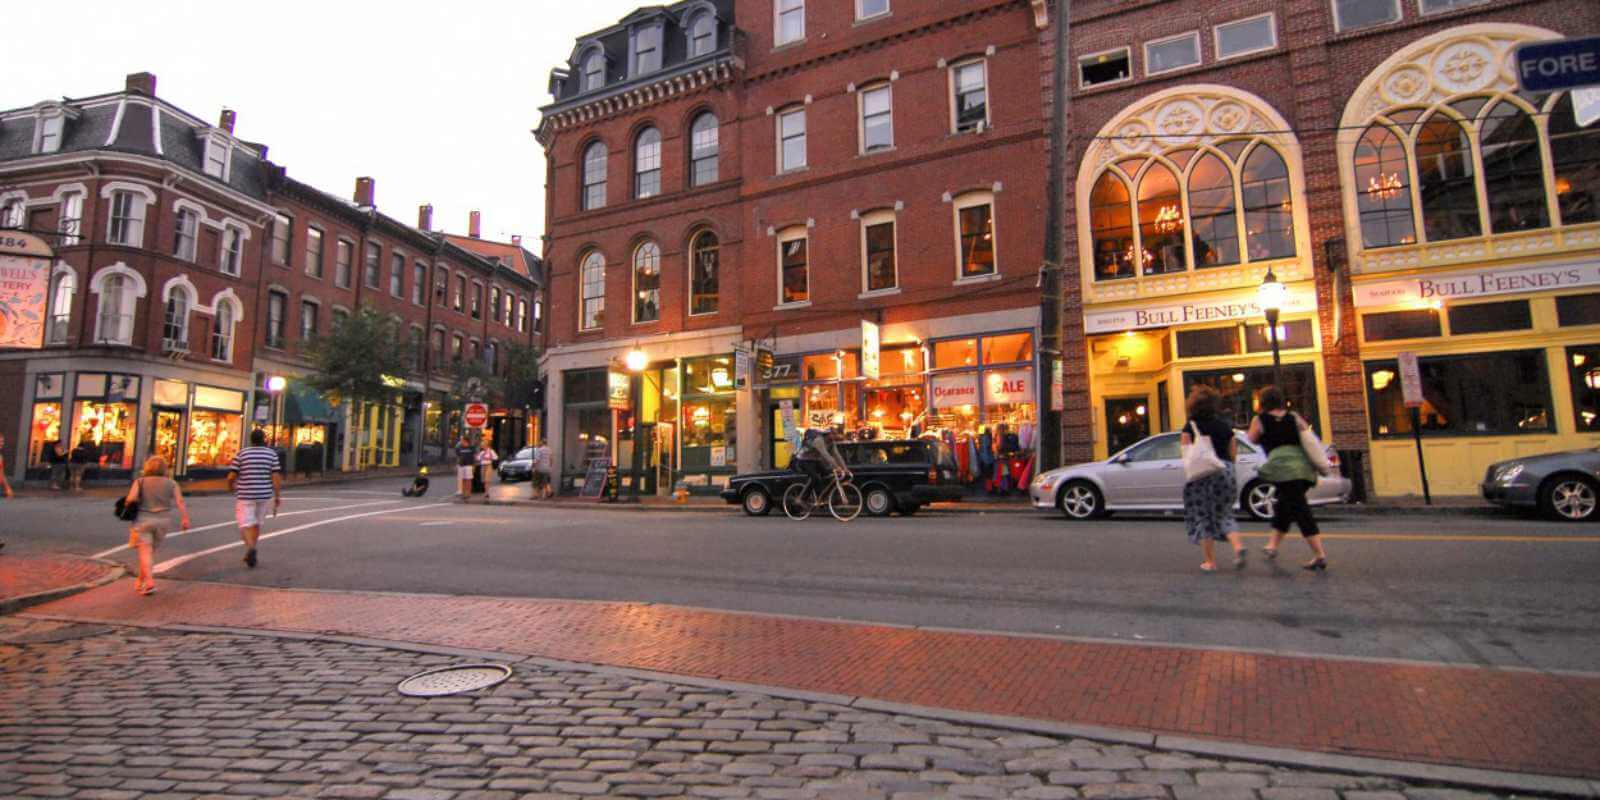 Town square in Portland, Maine